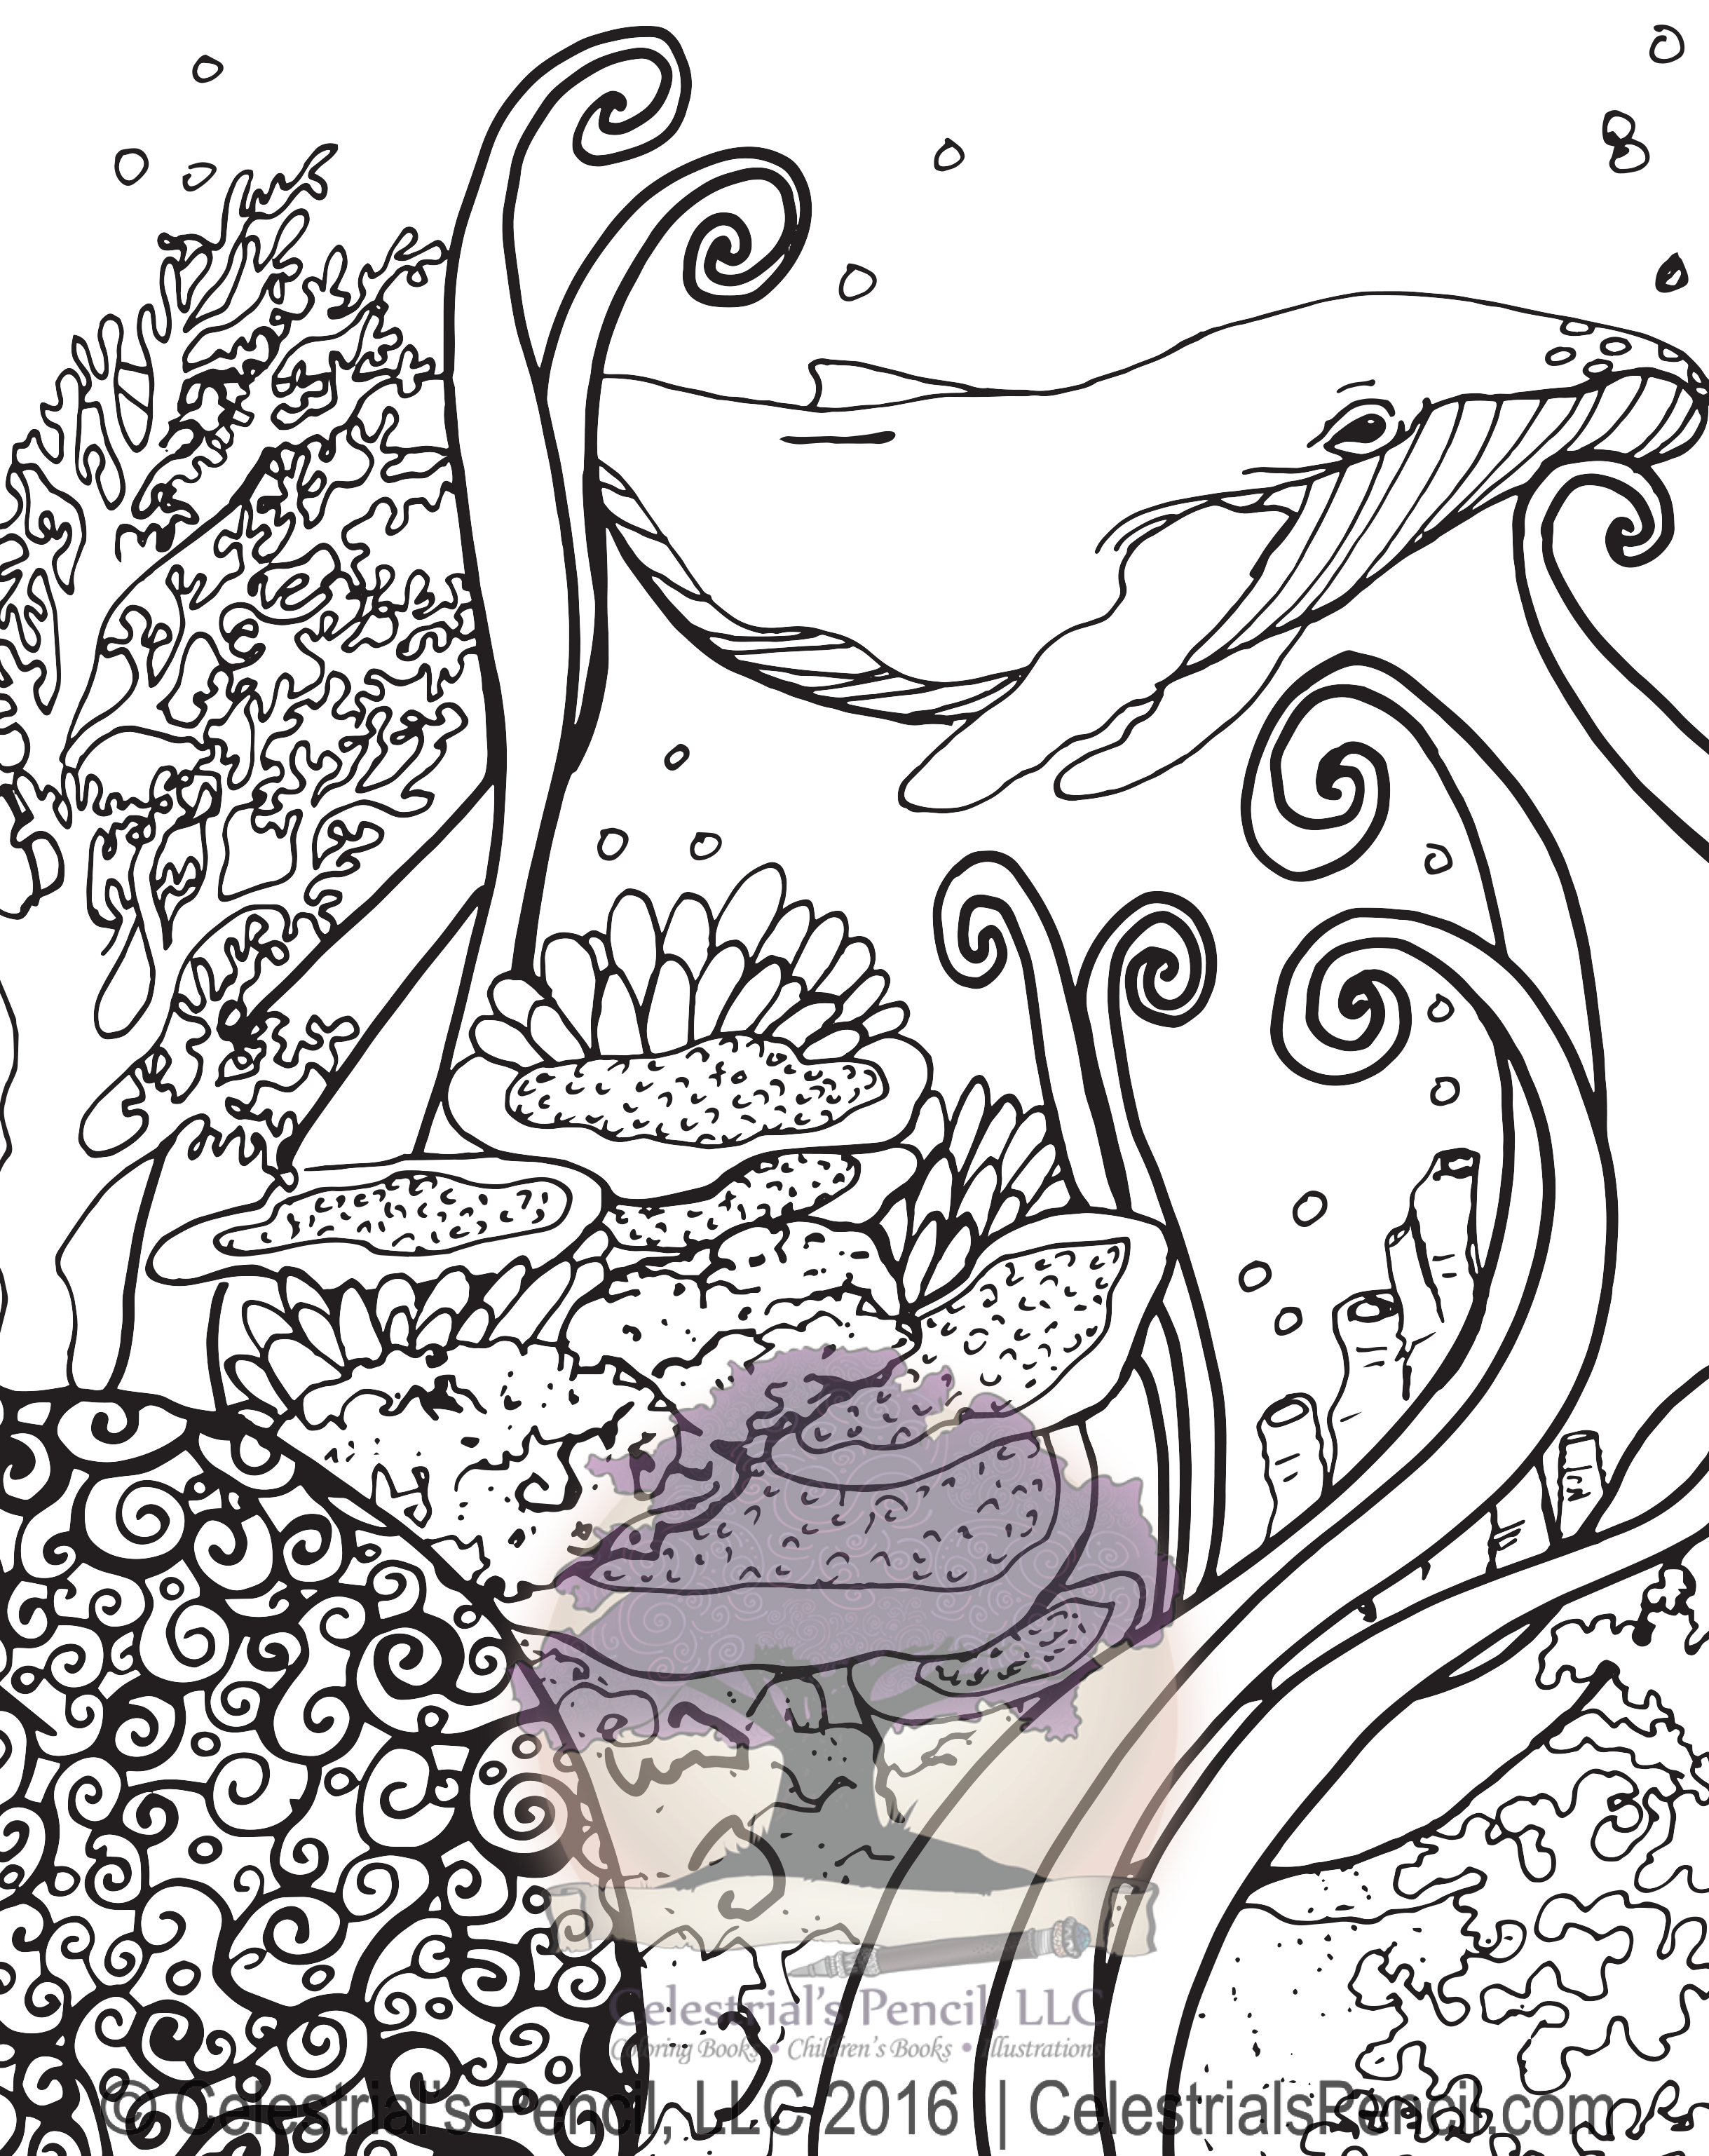 Whale #Whale #Coloringbook #Illustration #Ocean @Sealife #Coral ...